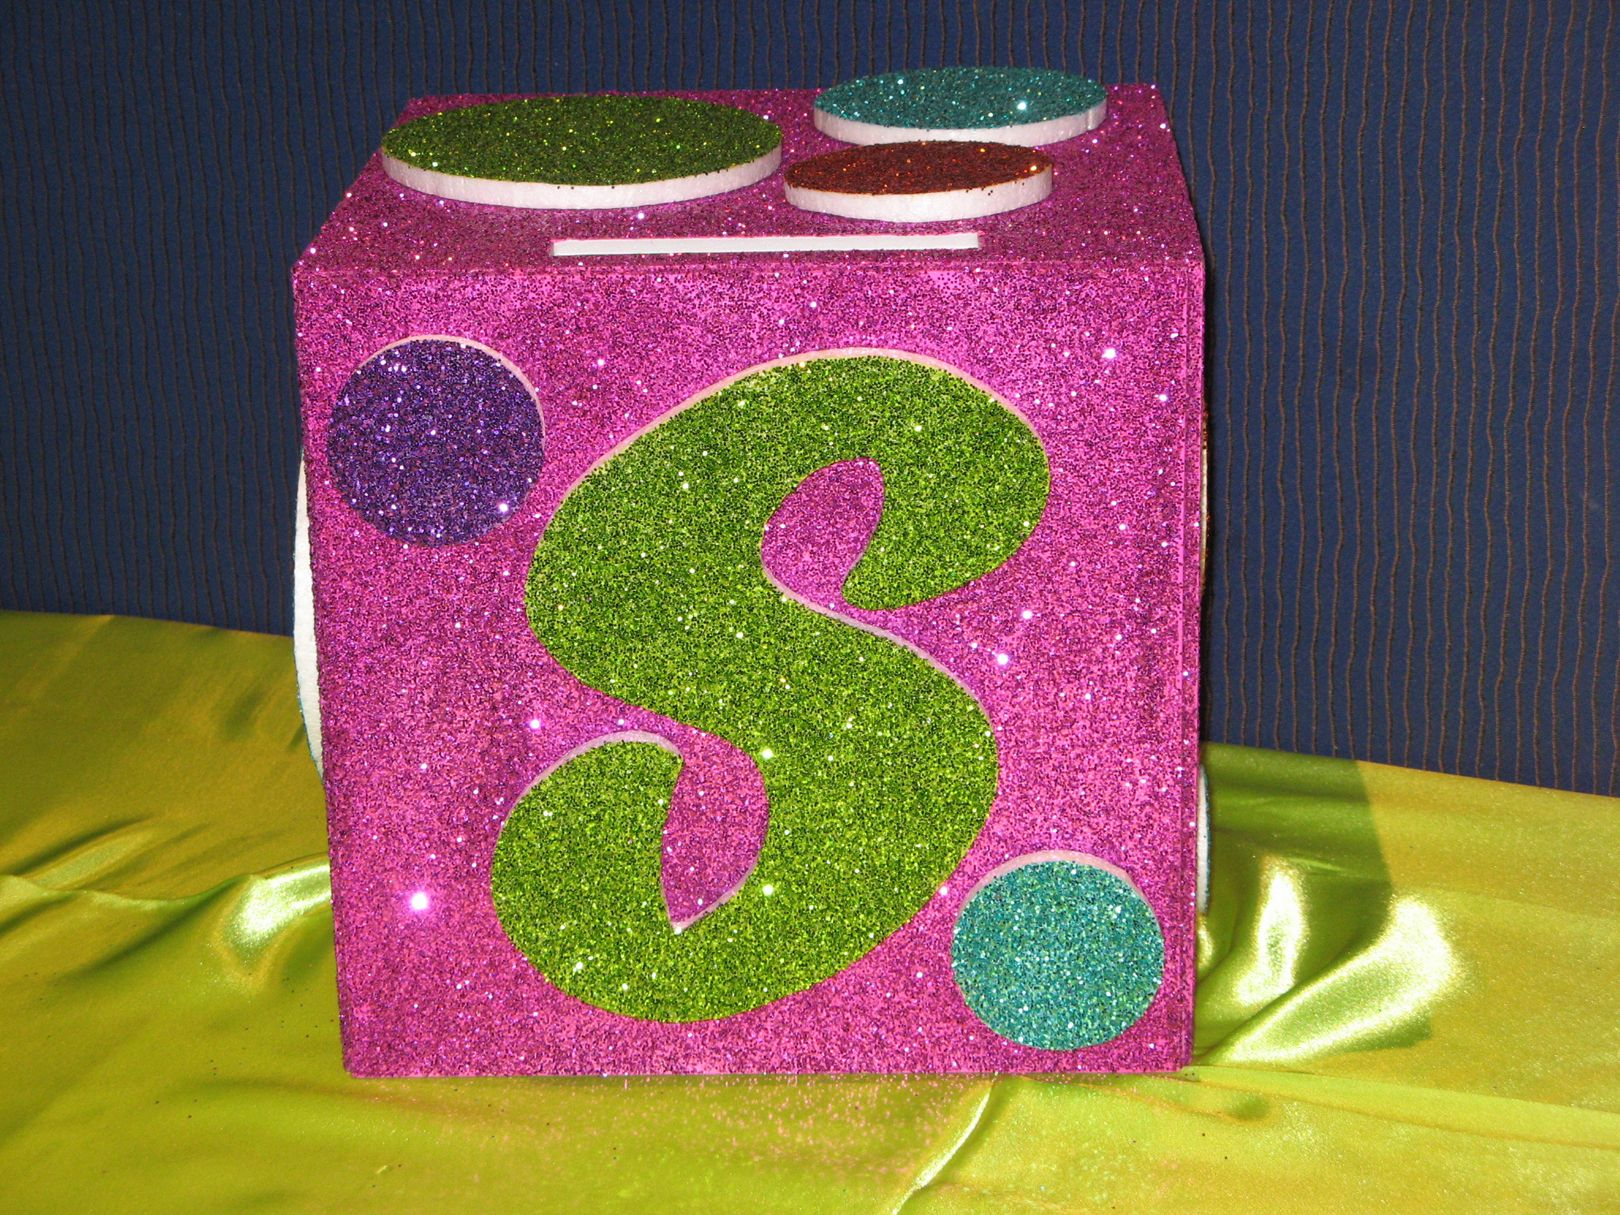 Polka Dot Glittered Gift Box by www.idealpartydecorators.com